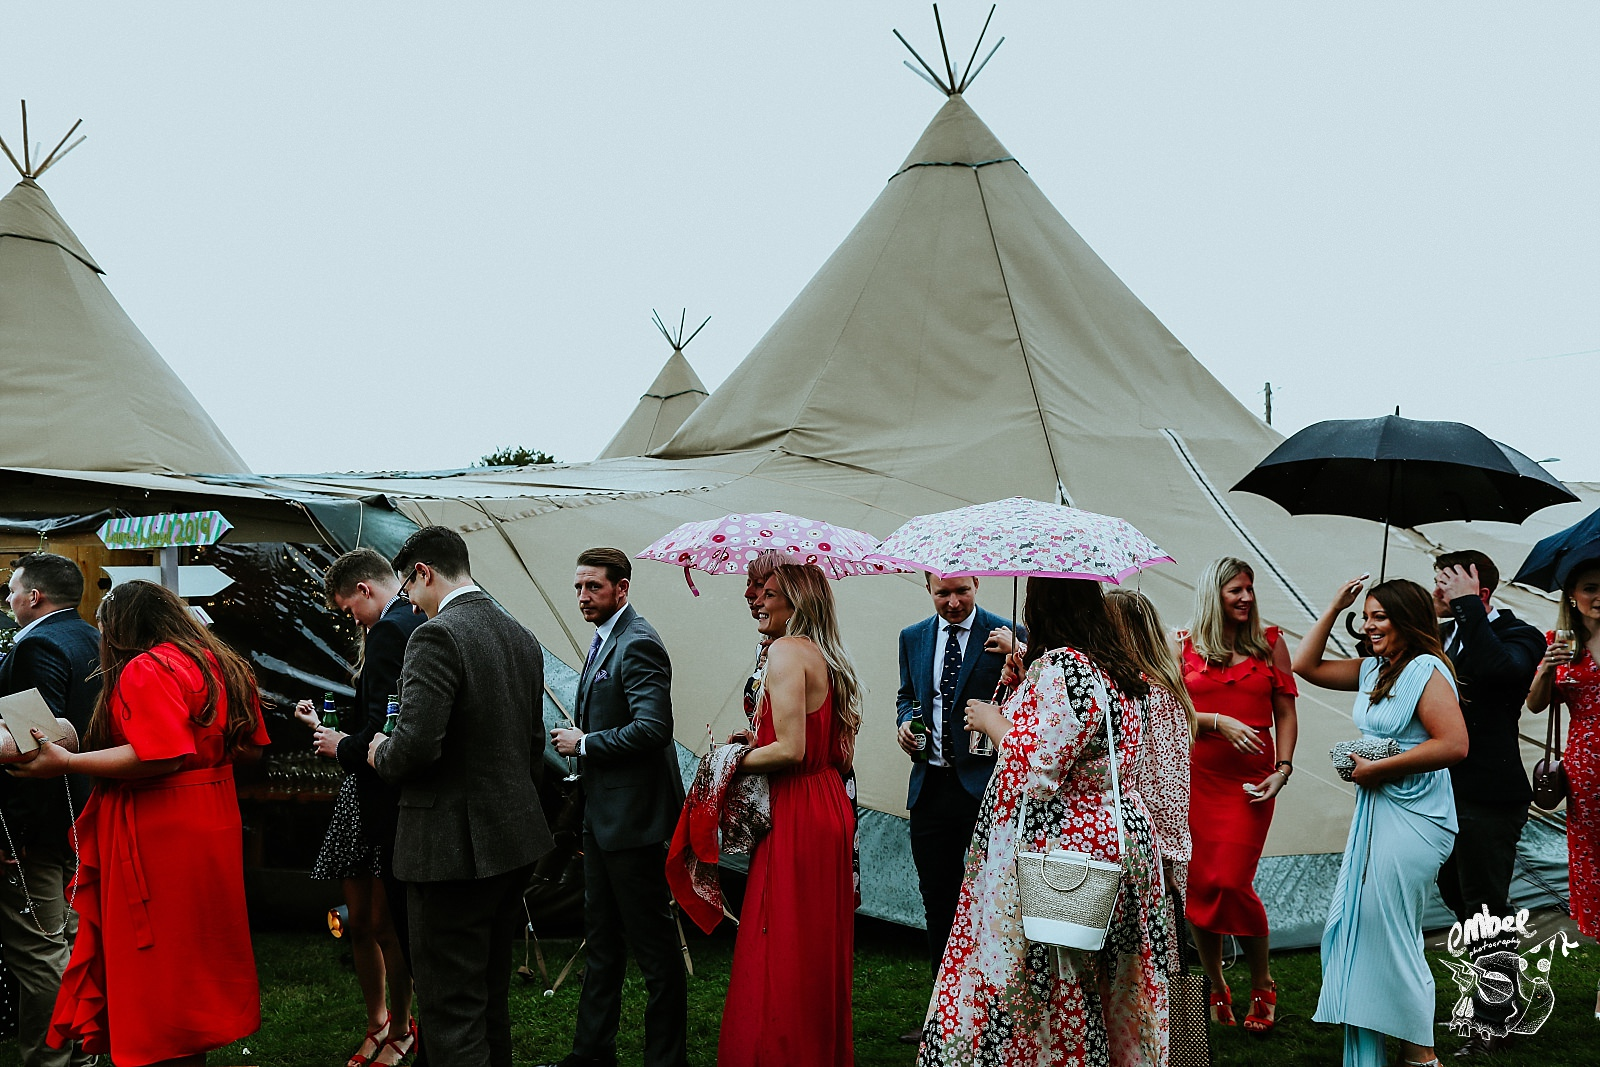 guests walking in the rain with umbrellas